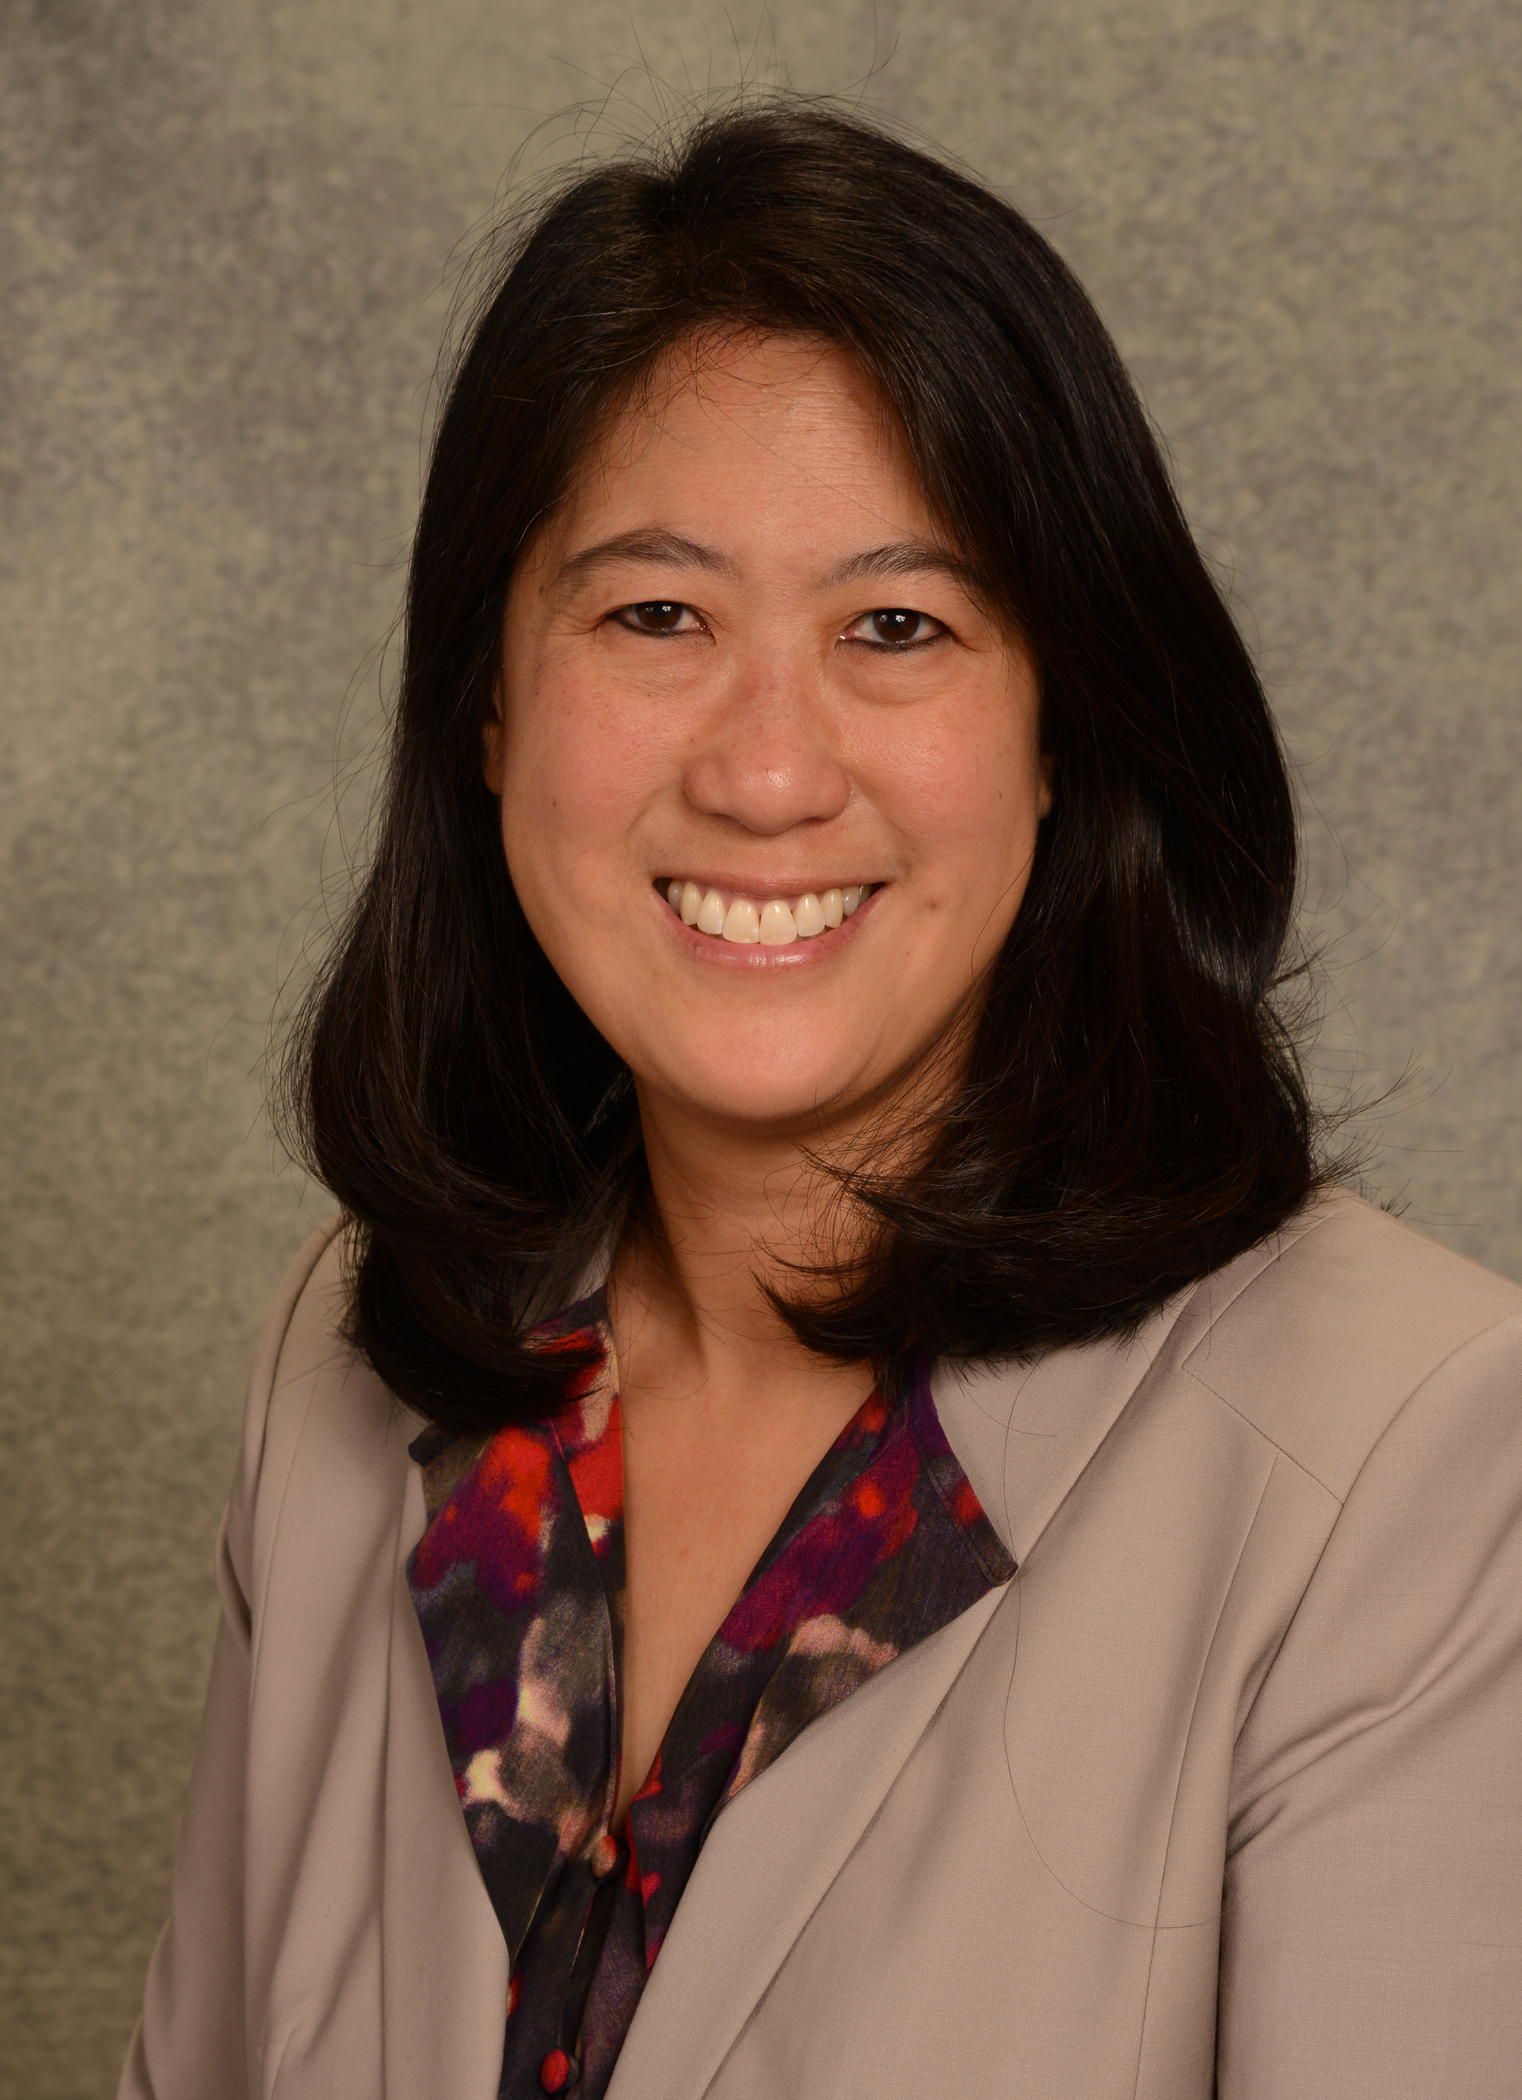 Katherine Chin, DDS